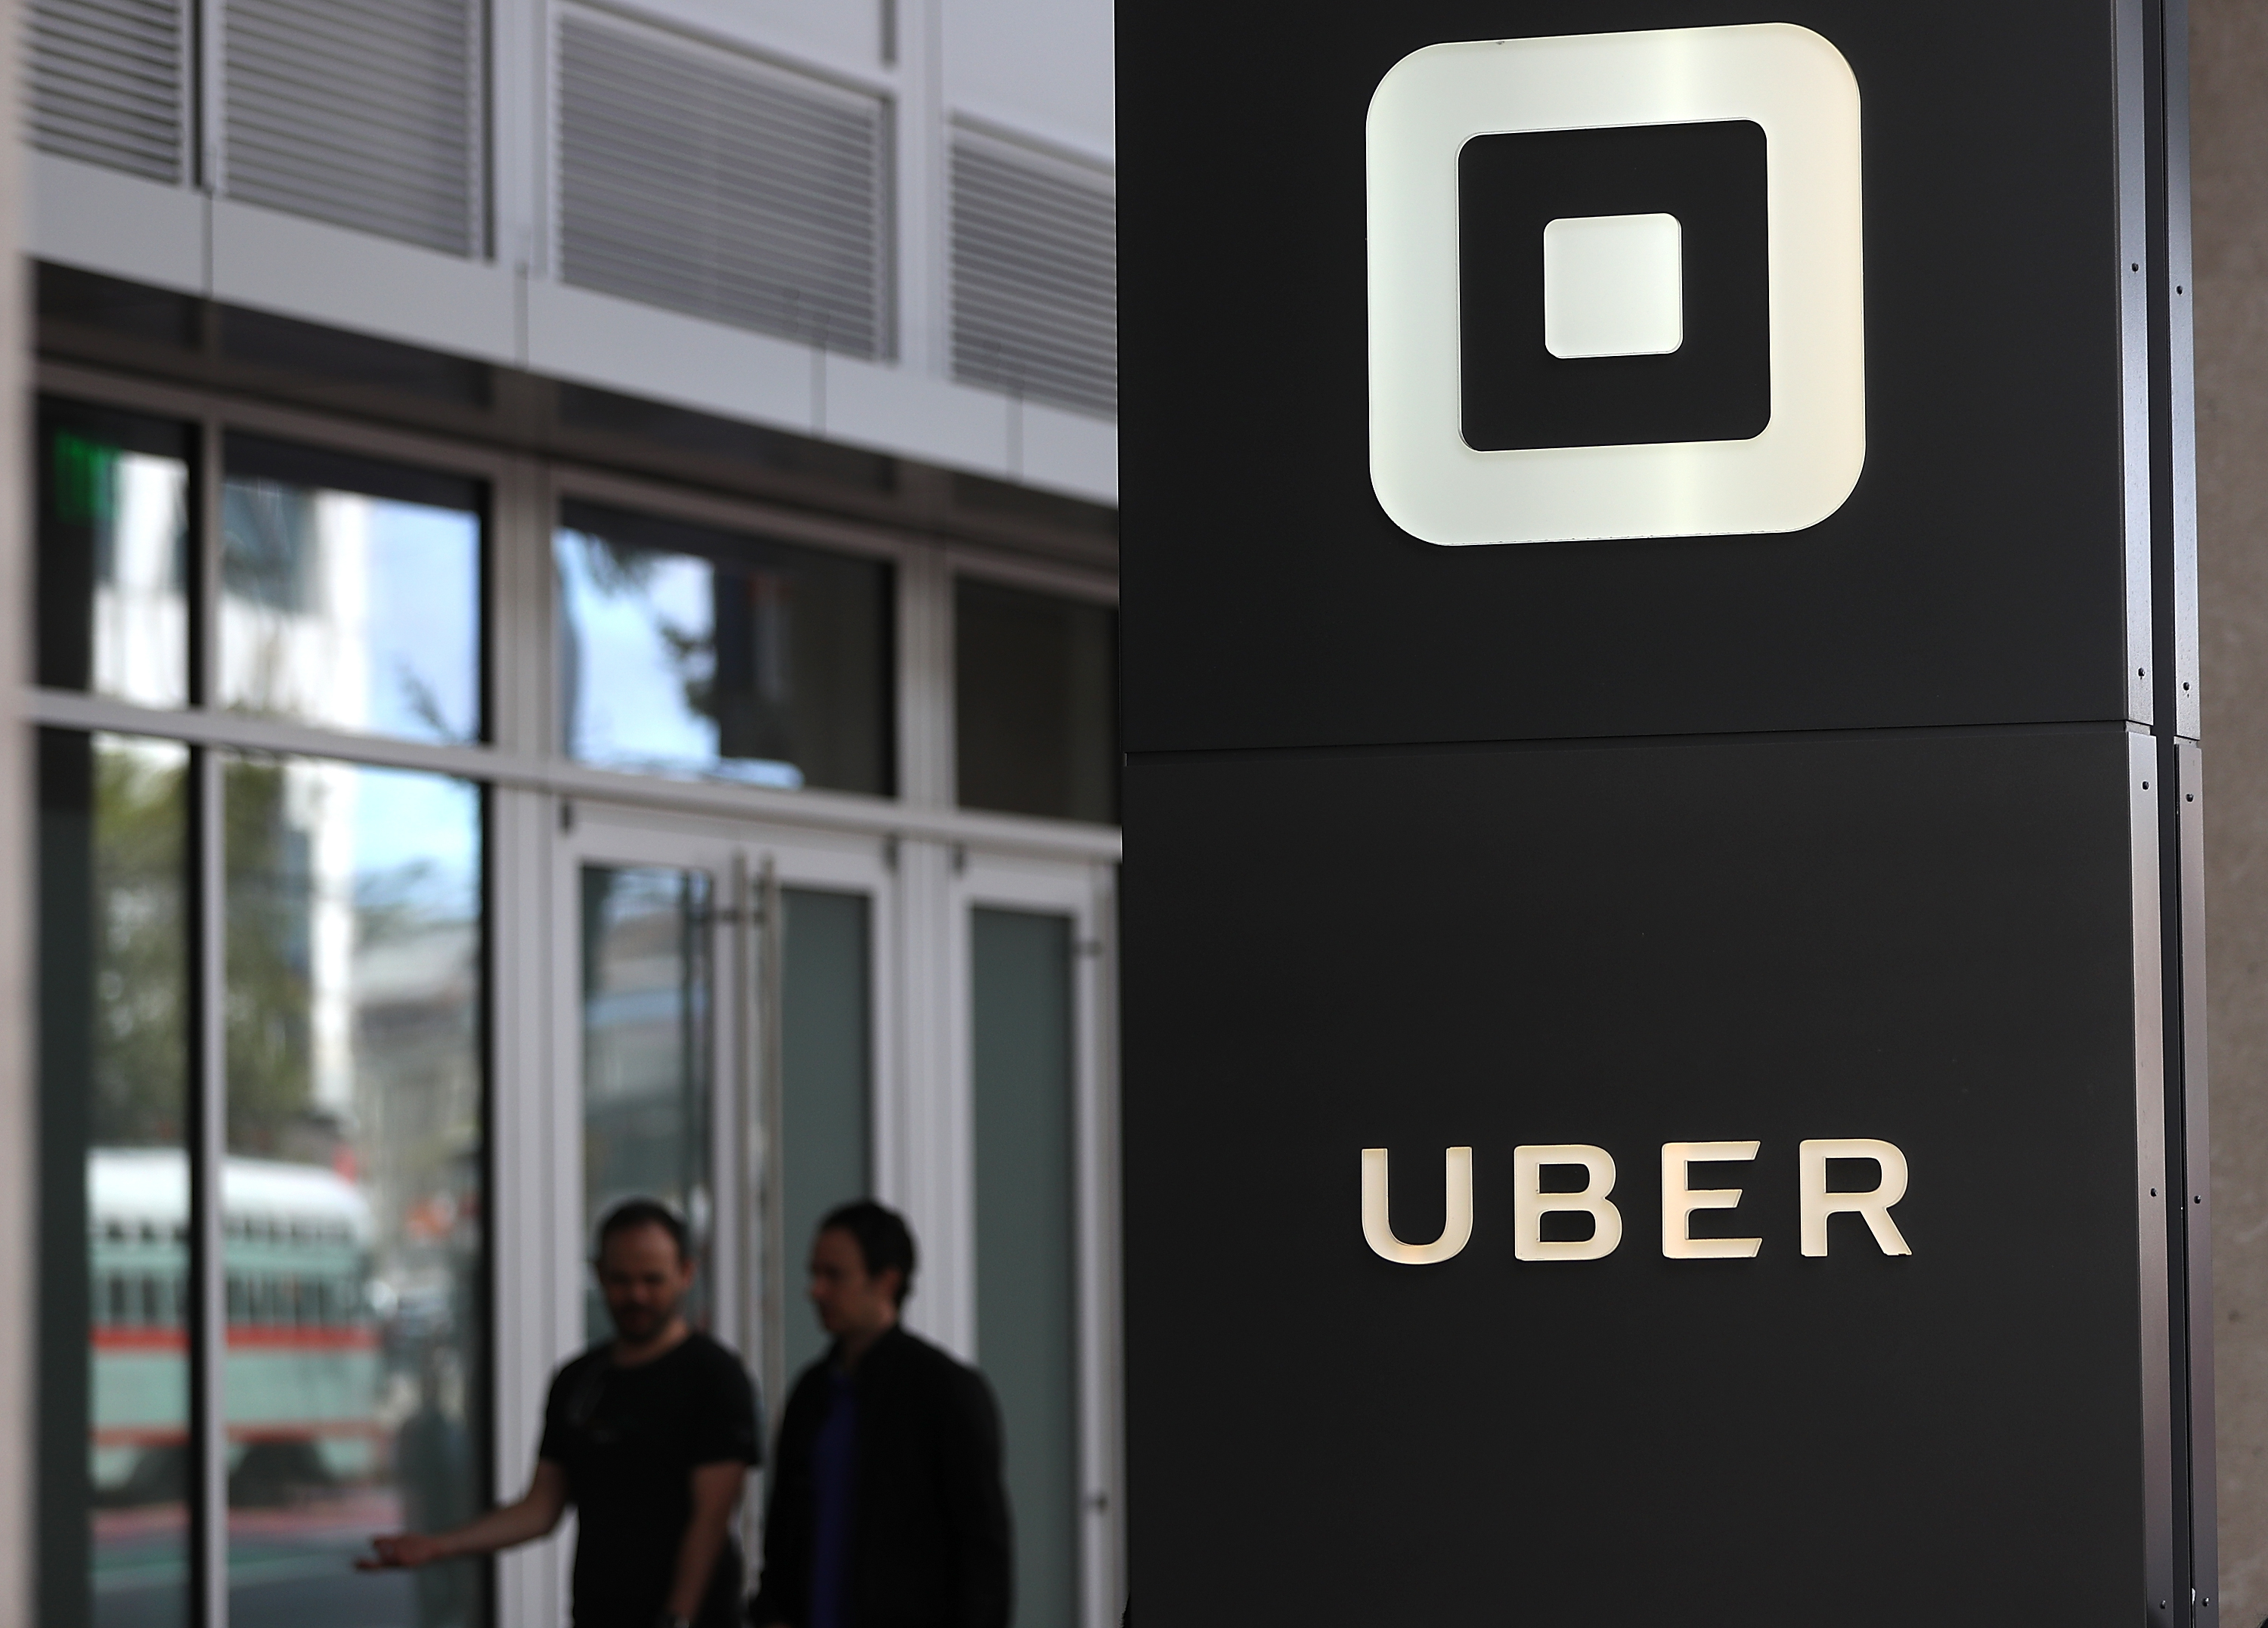 Uber Reportedly Loses Over $1 Billion In First Half Of 2016